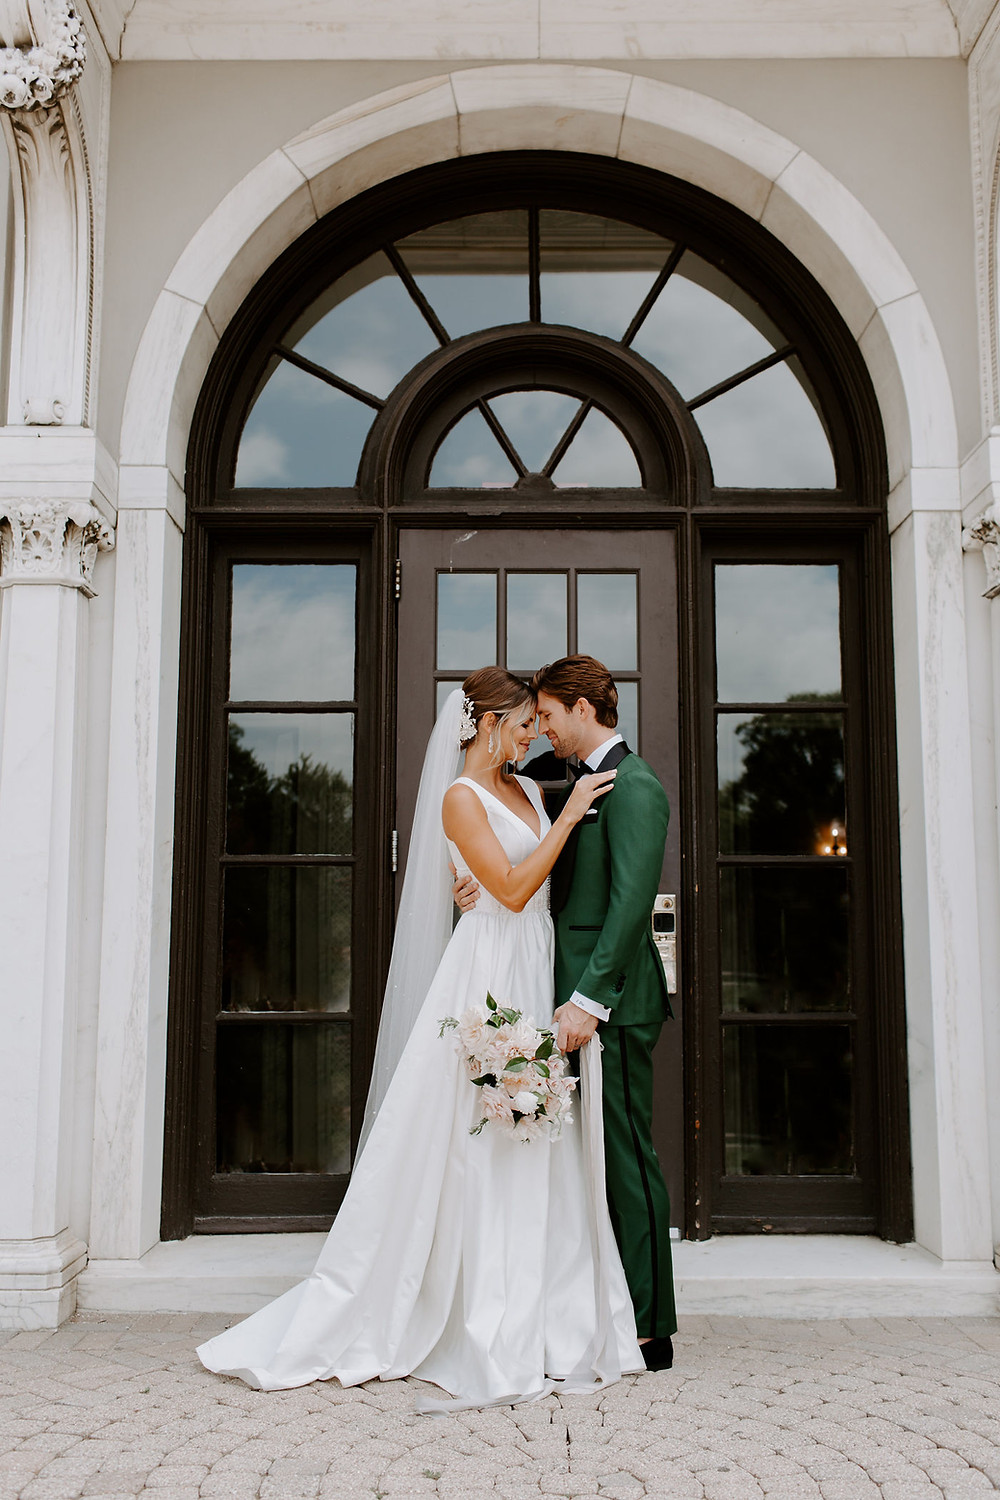 Bride and groom stand under arched doorway at Armour House